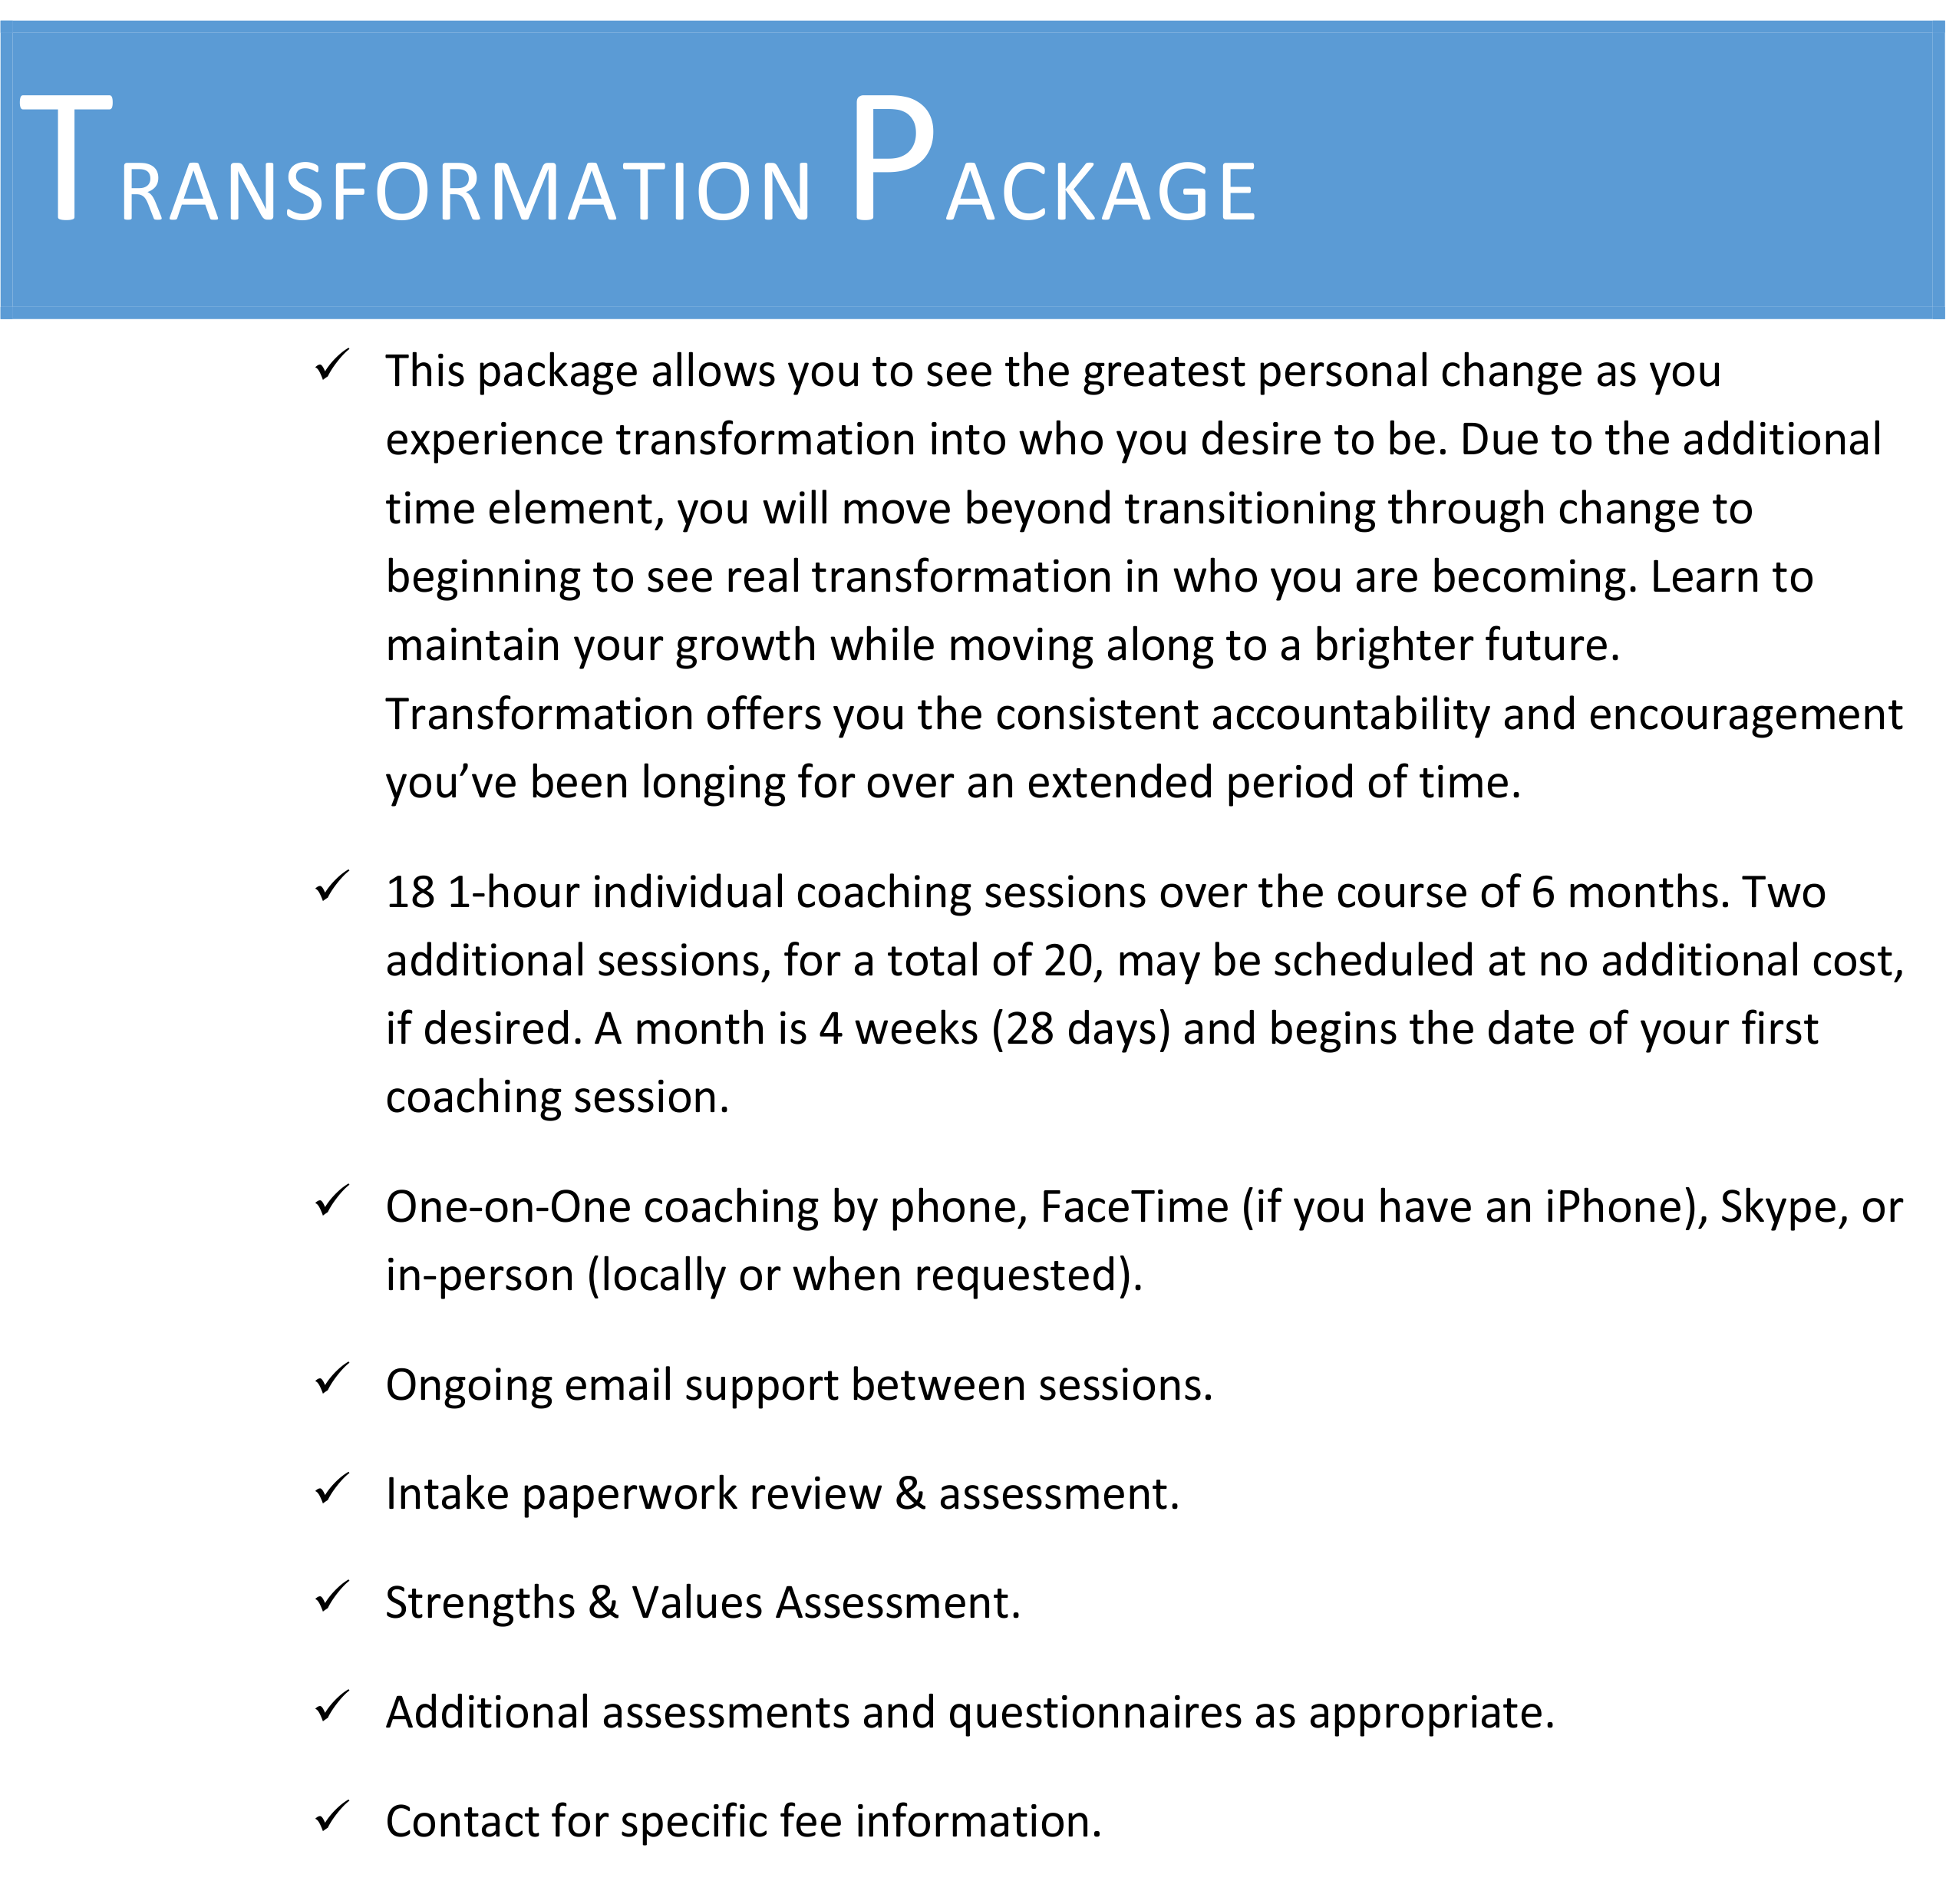 transformation package details